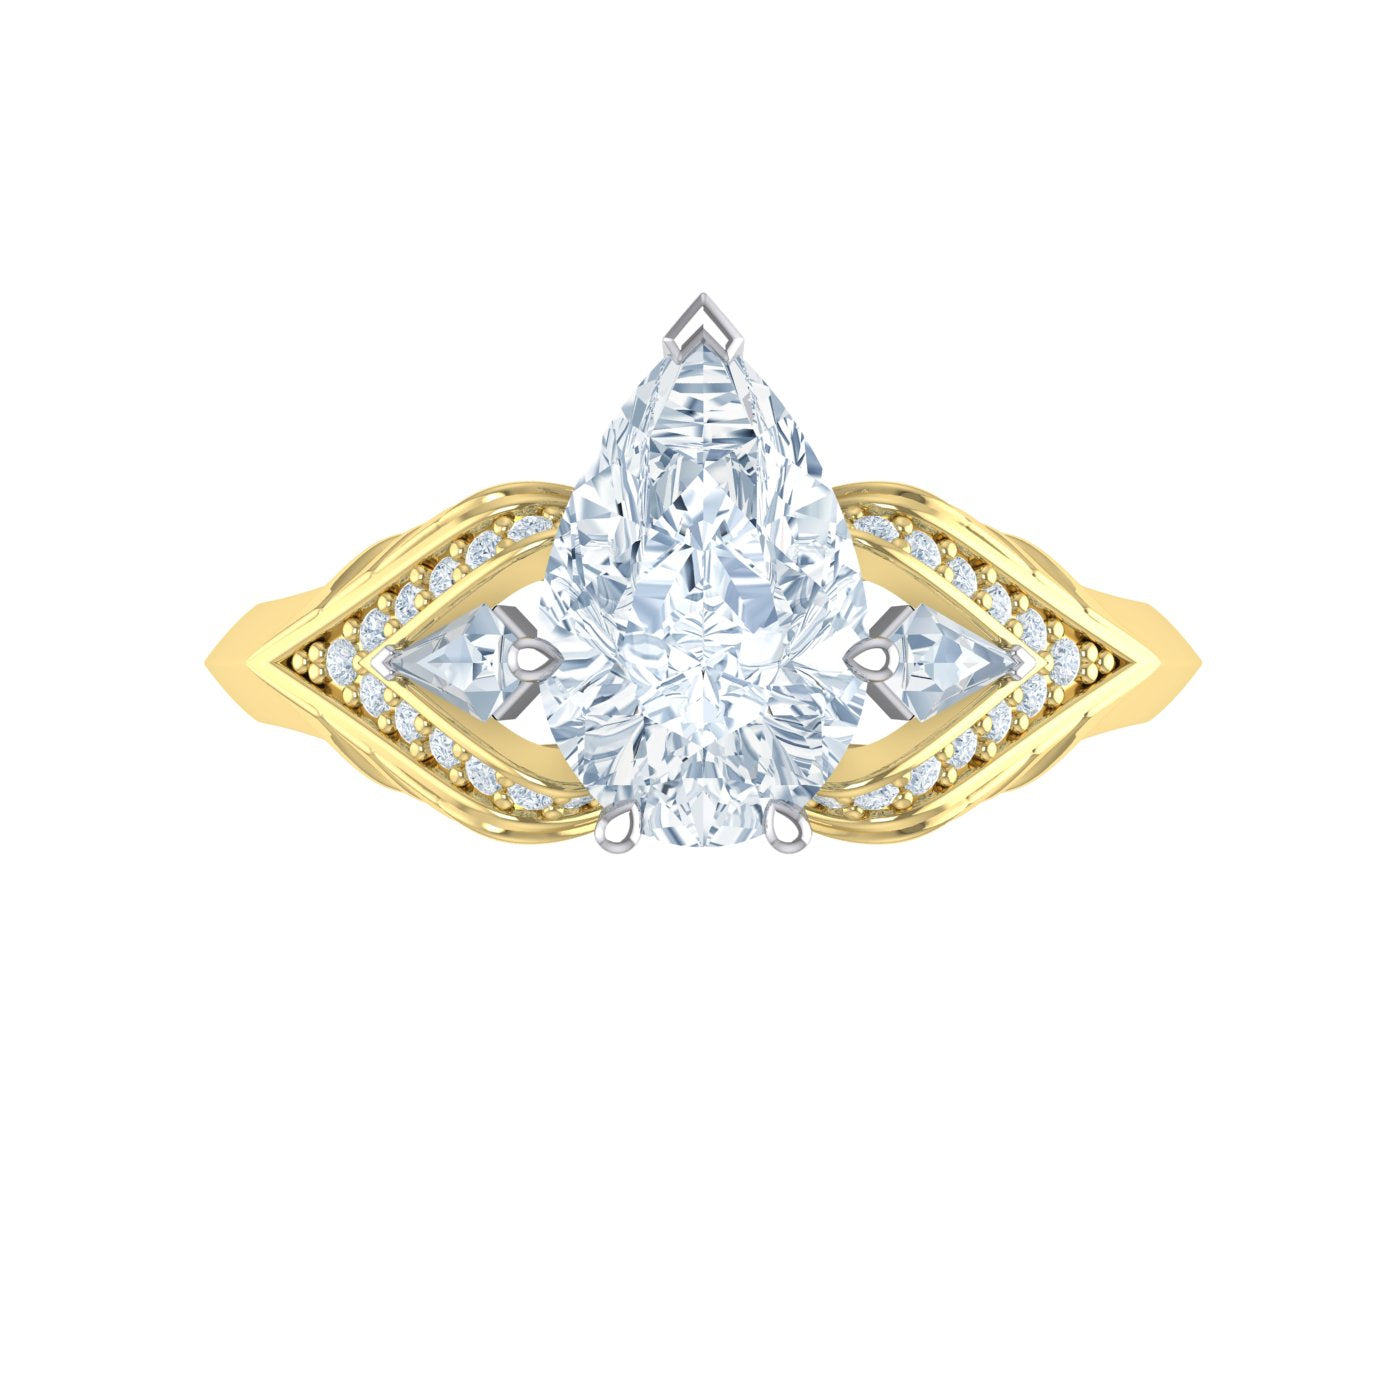 Alice Herald 18kt gold Pear Diamond Ring